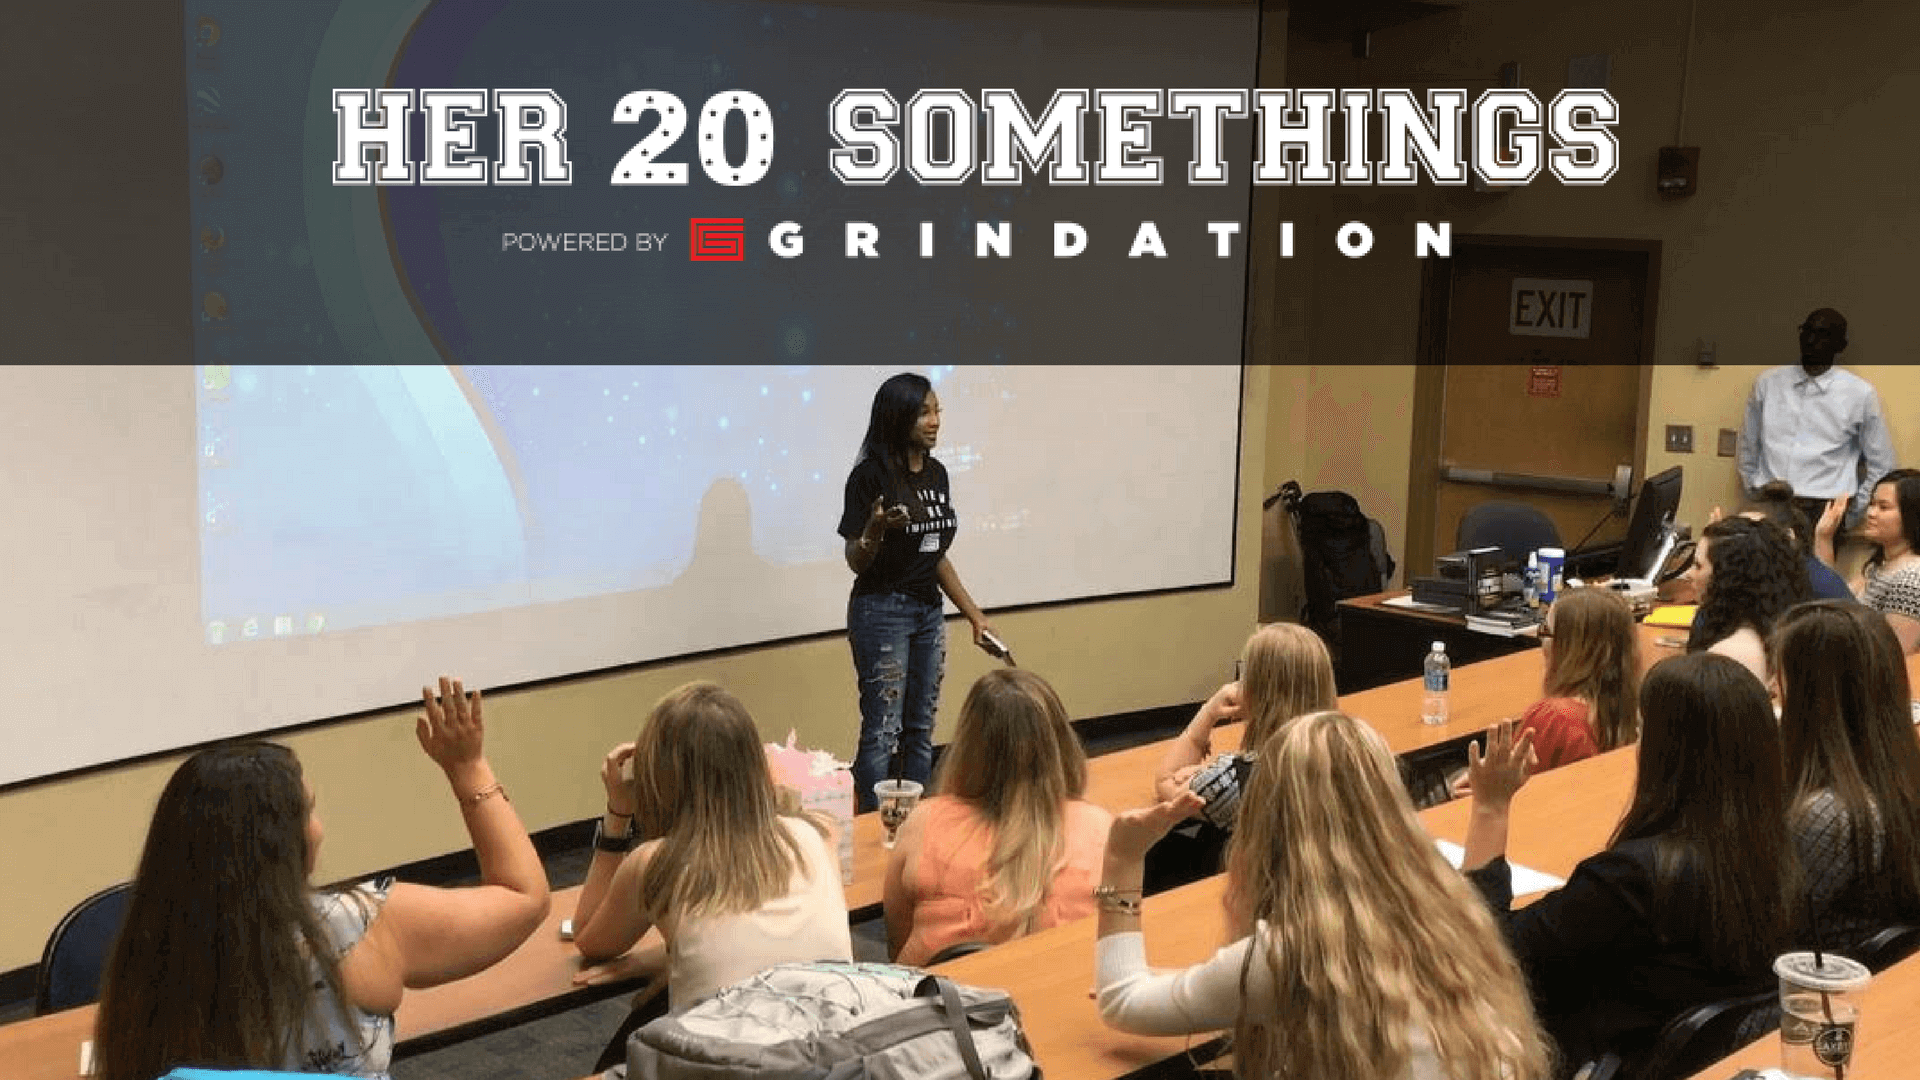 her 20 somethings grindation